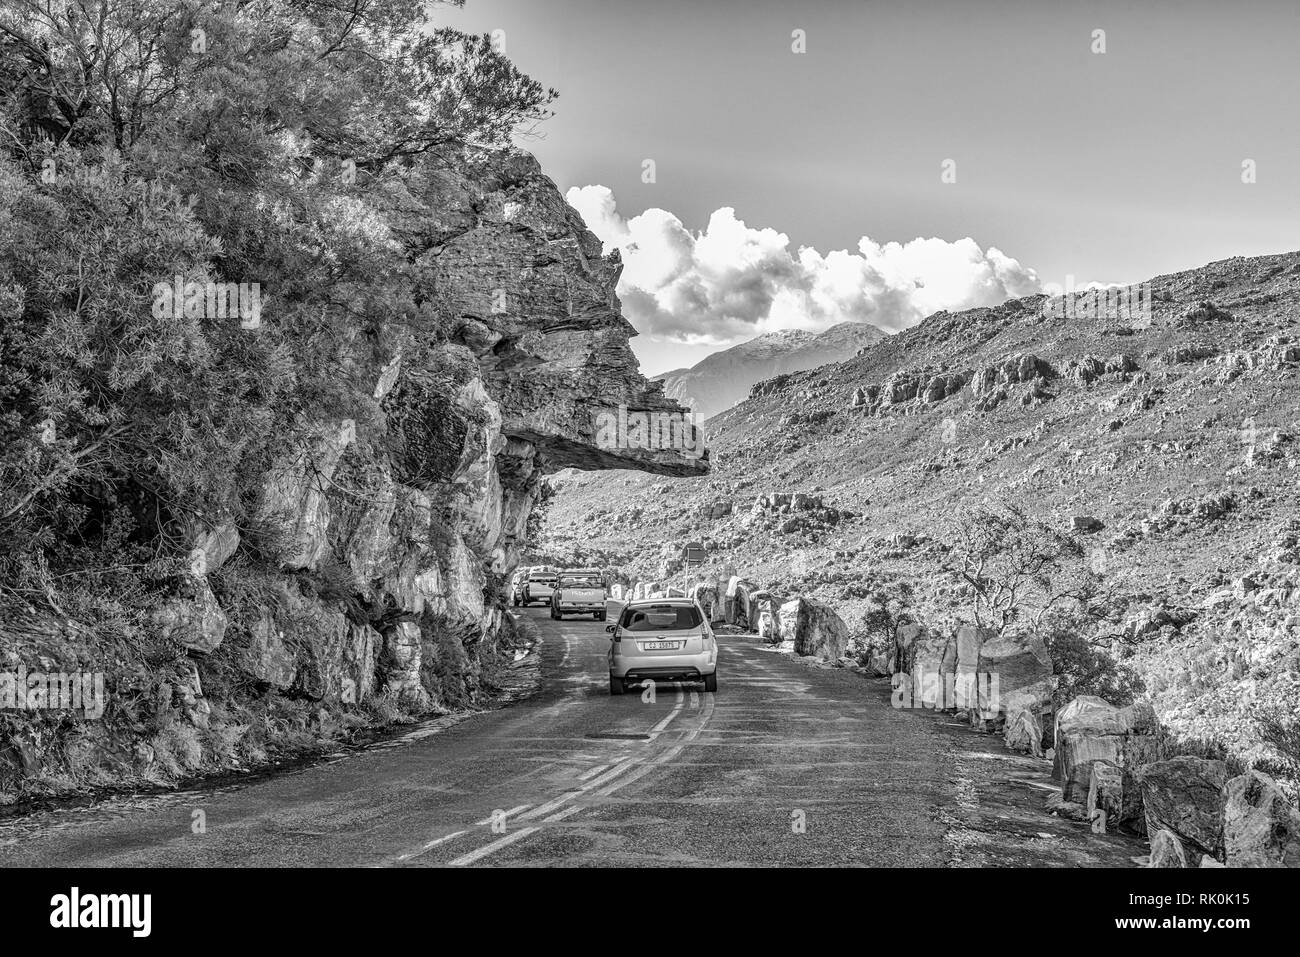 BAINS KLOOF, SOUTH AFRICA, AUGUST 8, 2018: Dacres Pulpit in the historic Bains Kloof Pass in the Western Cape Province. Vehicles are visible. Monochro - Stock Image